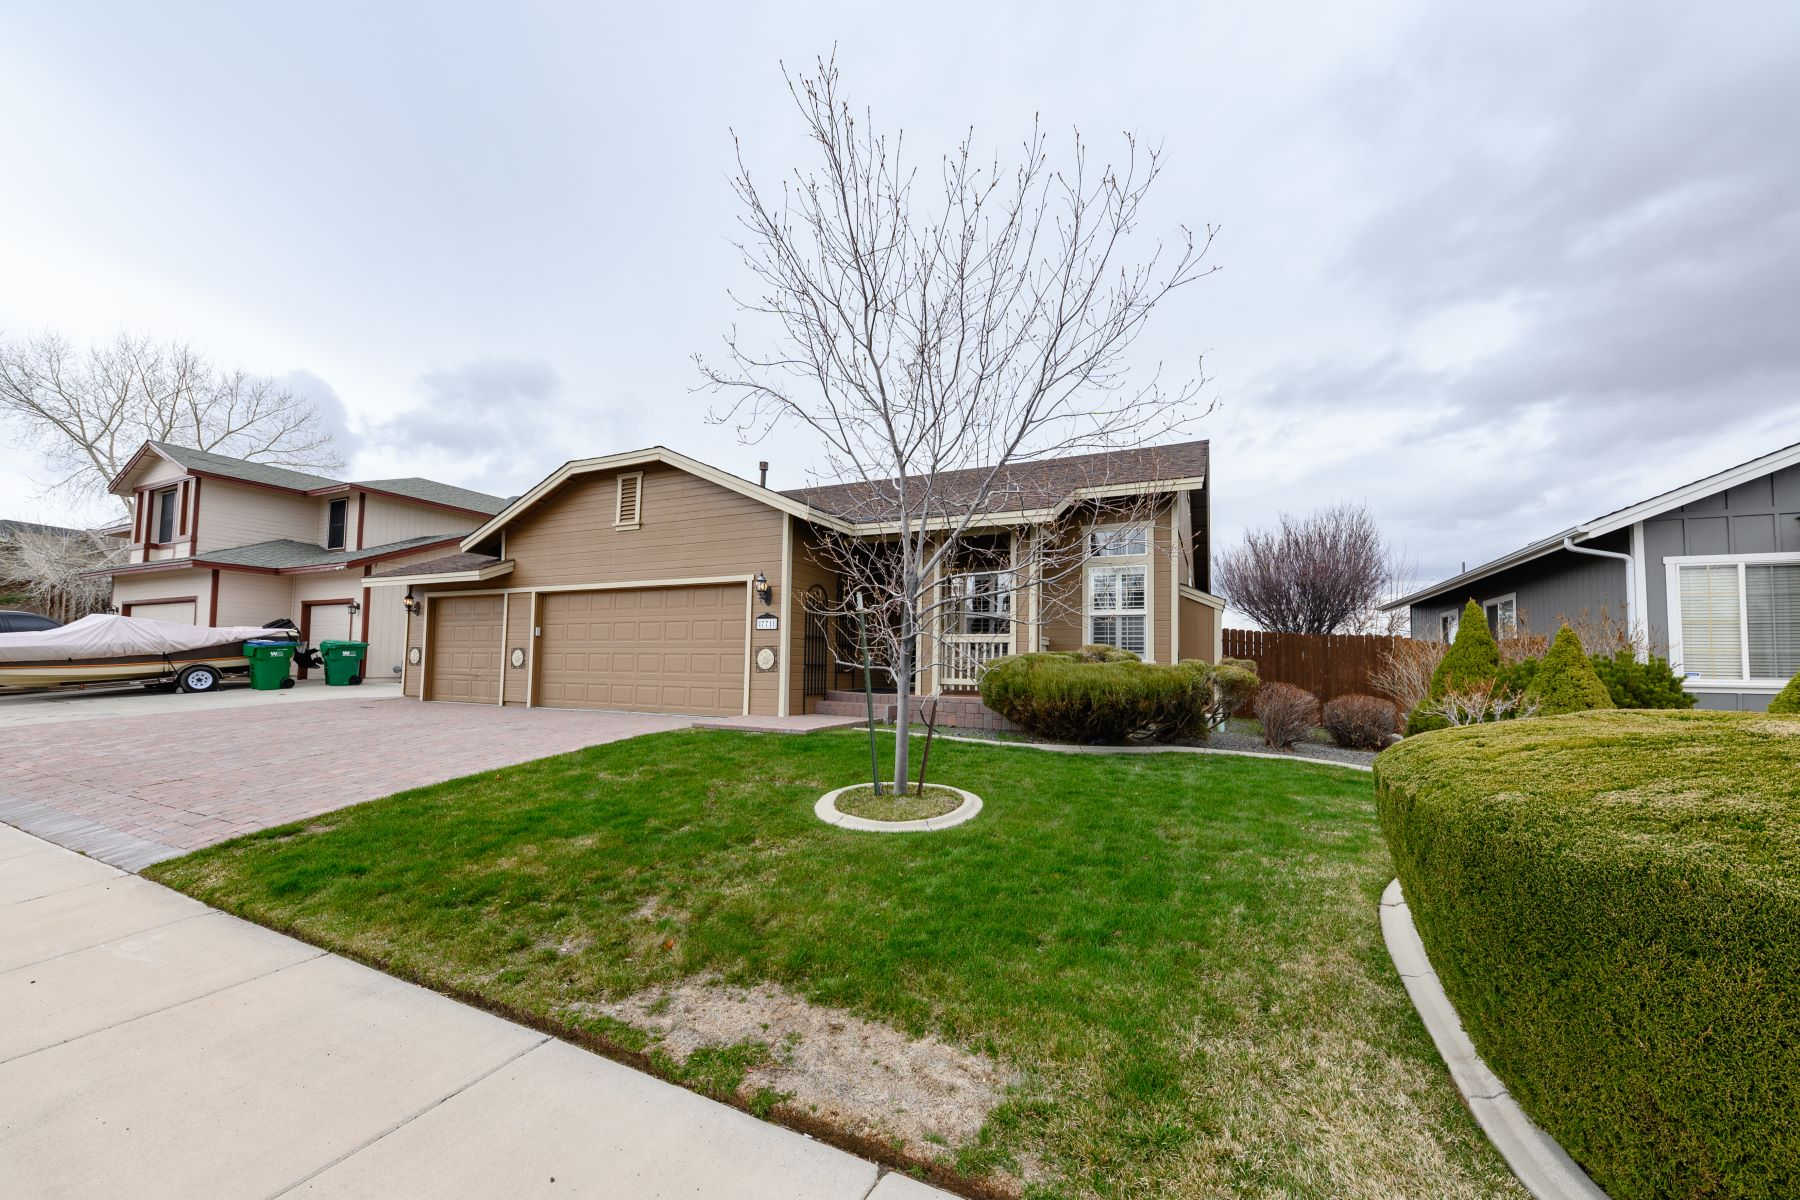 Single Family Home for Active at 771 W. Golden Valley Road, Reno, NV 89506 771 W. Golden Valley Road Reno, Nevada 89506 United States